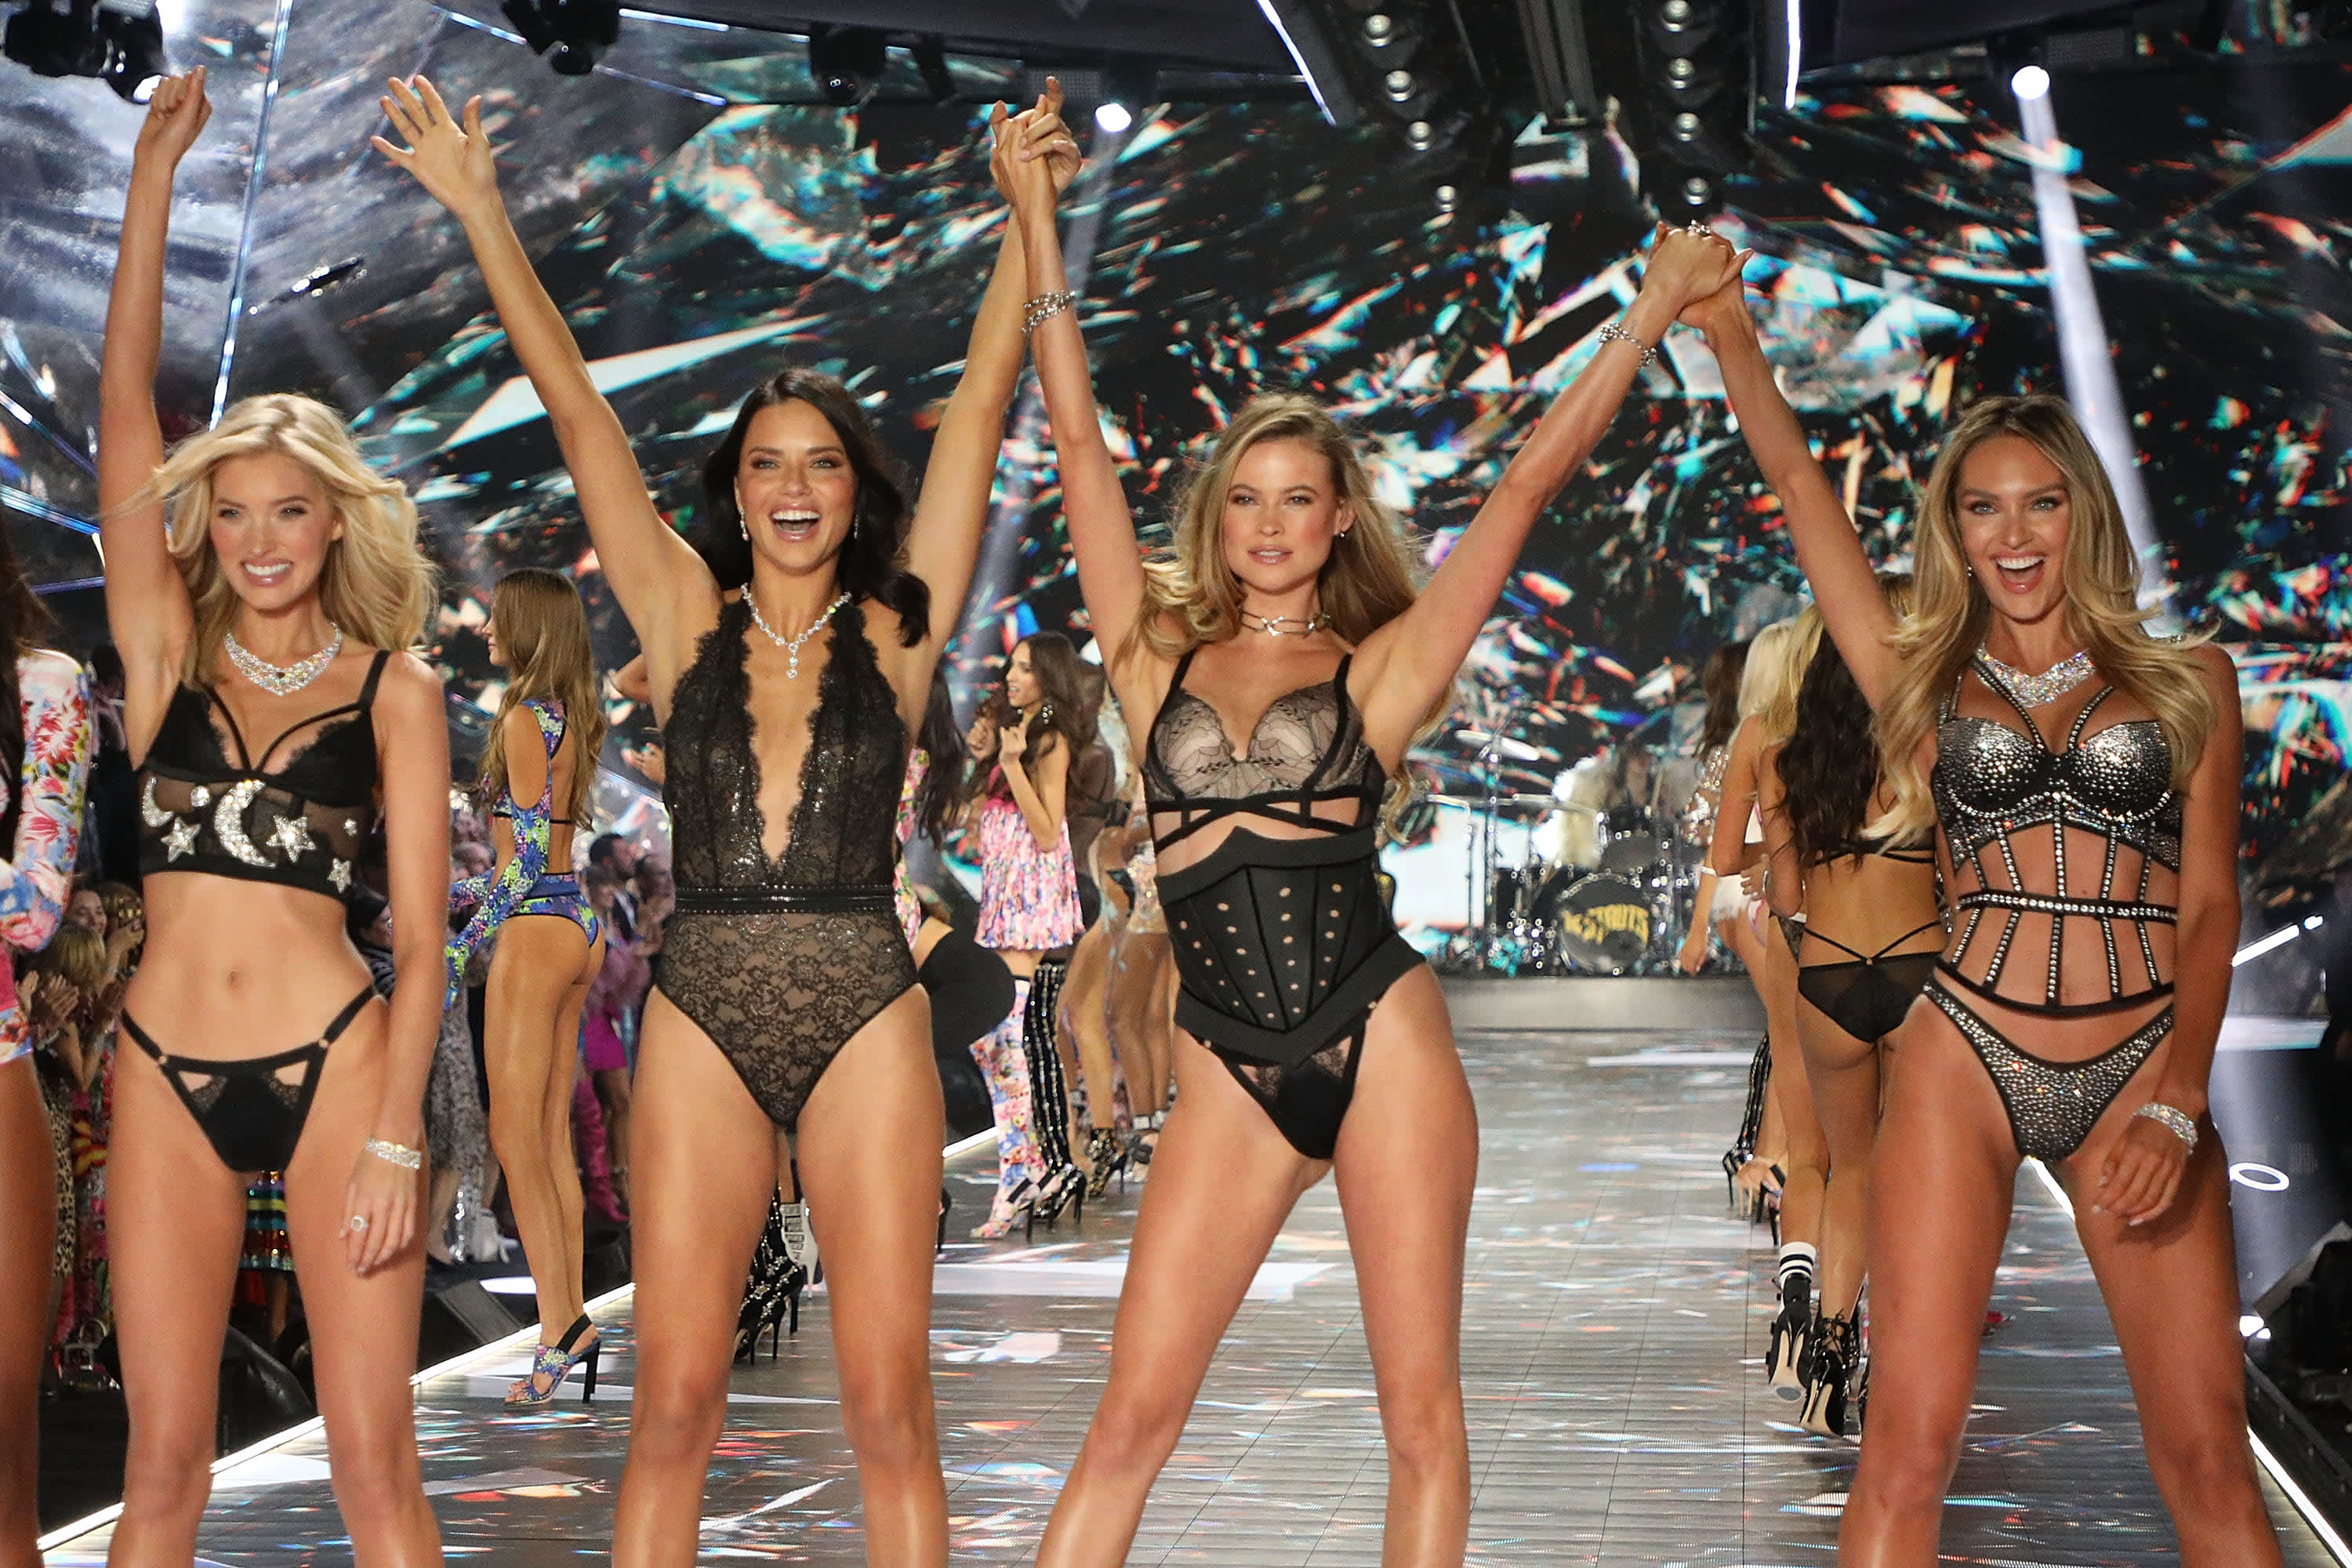 Shares of Victoria's Secret-owner L Brands spike nearly 11% after beating earnings expectations